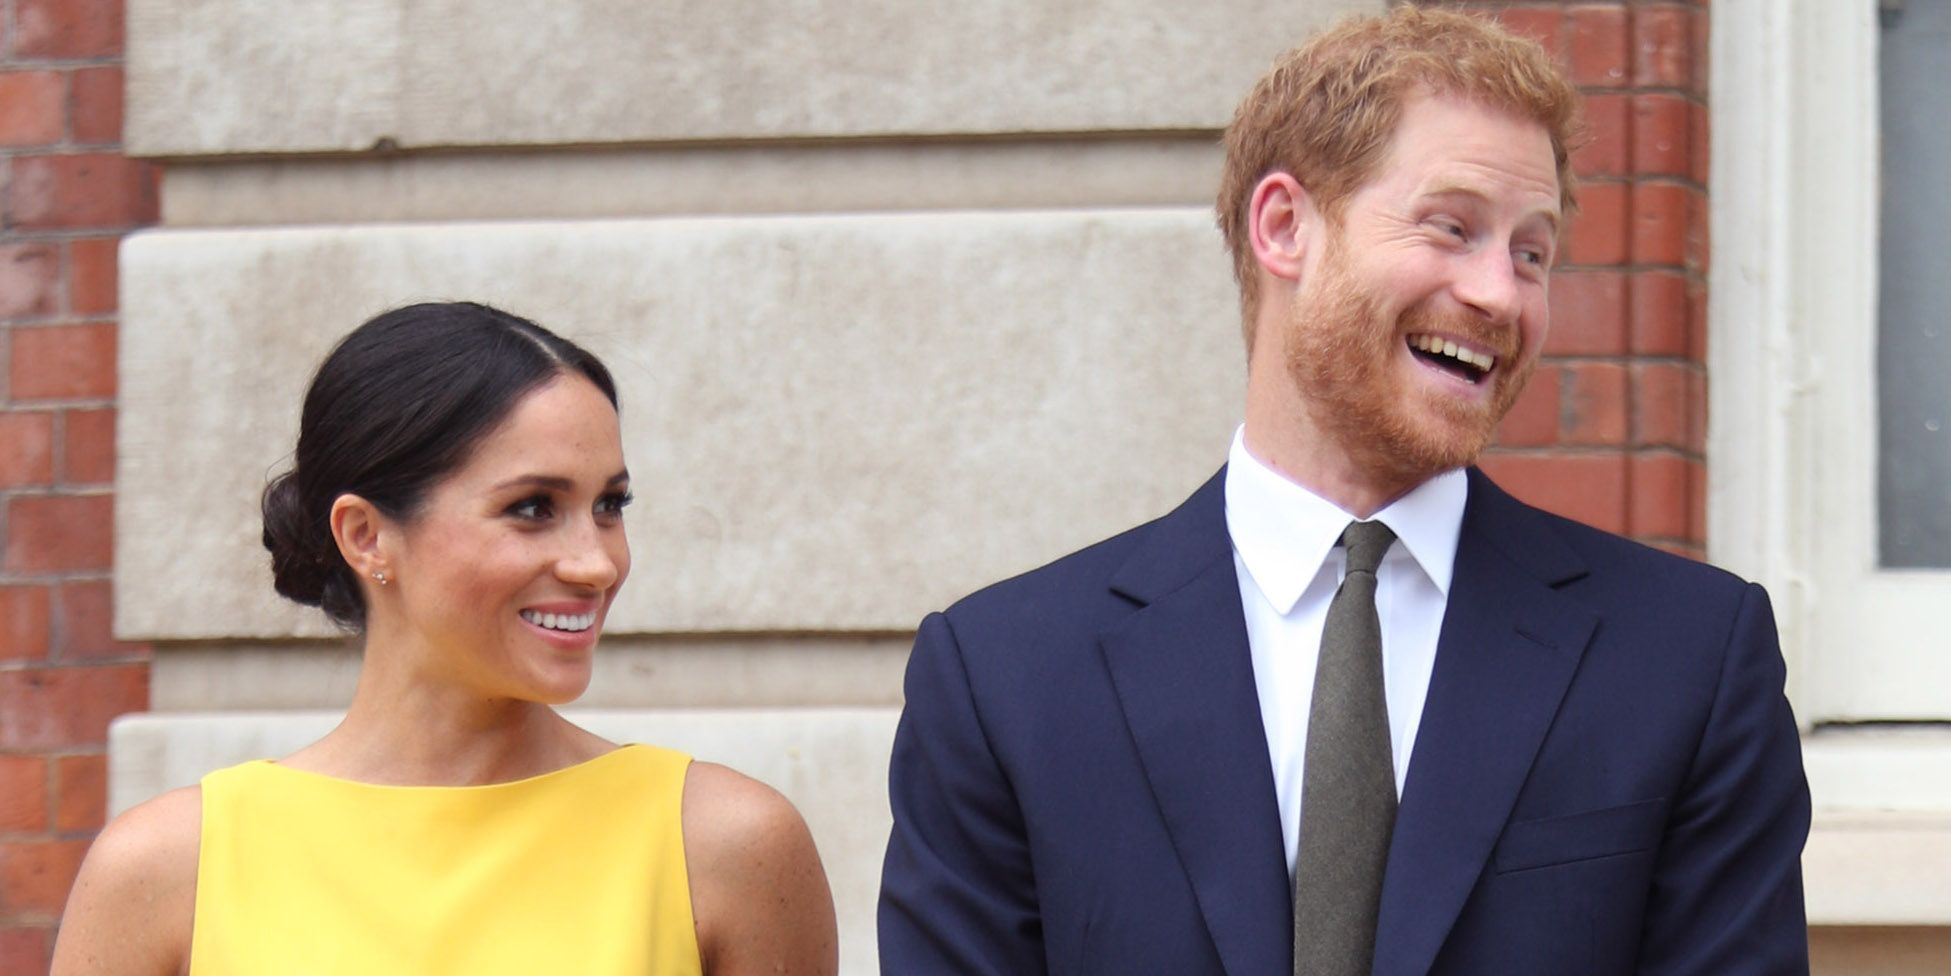 Meghan Markle and Prince Harry Just Sent out the Sweetest Wedding Thank You Cards